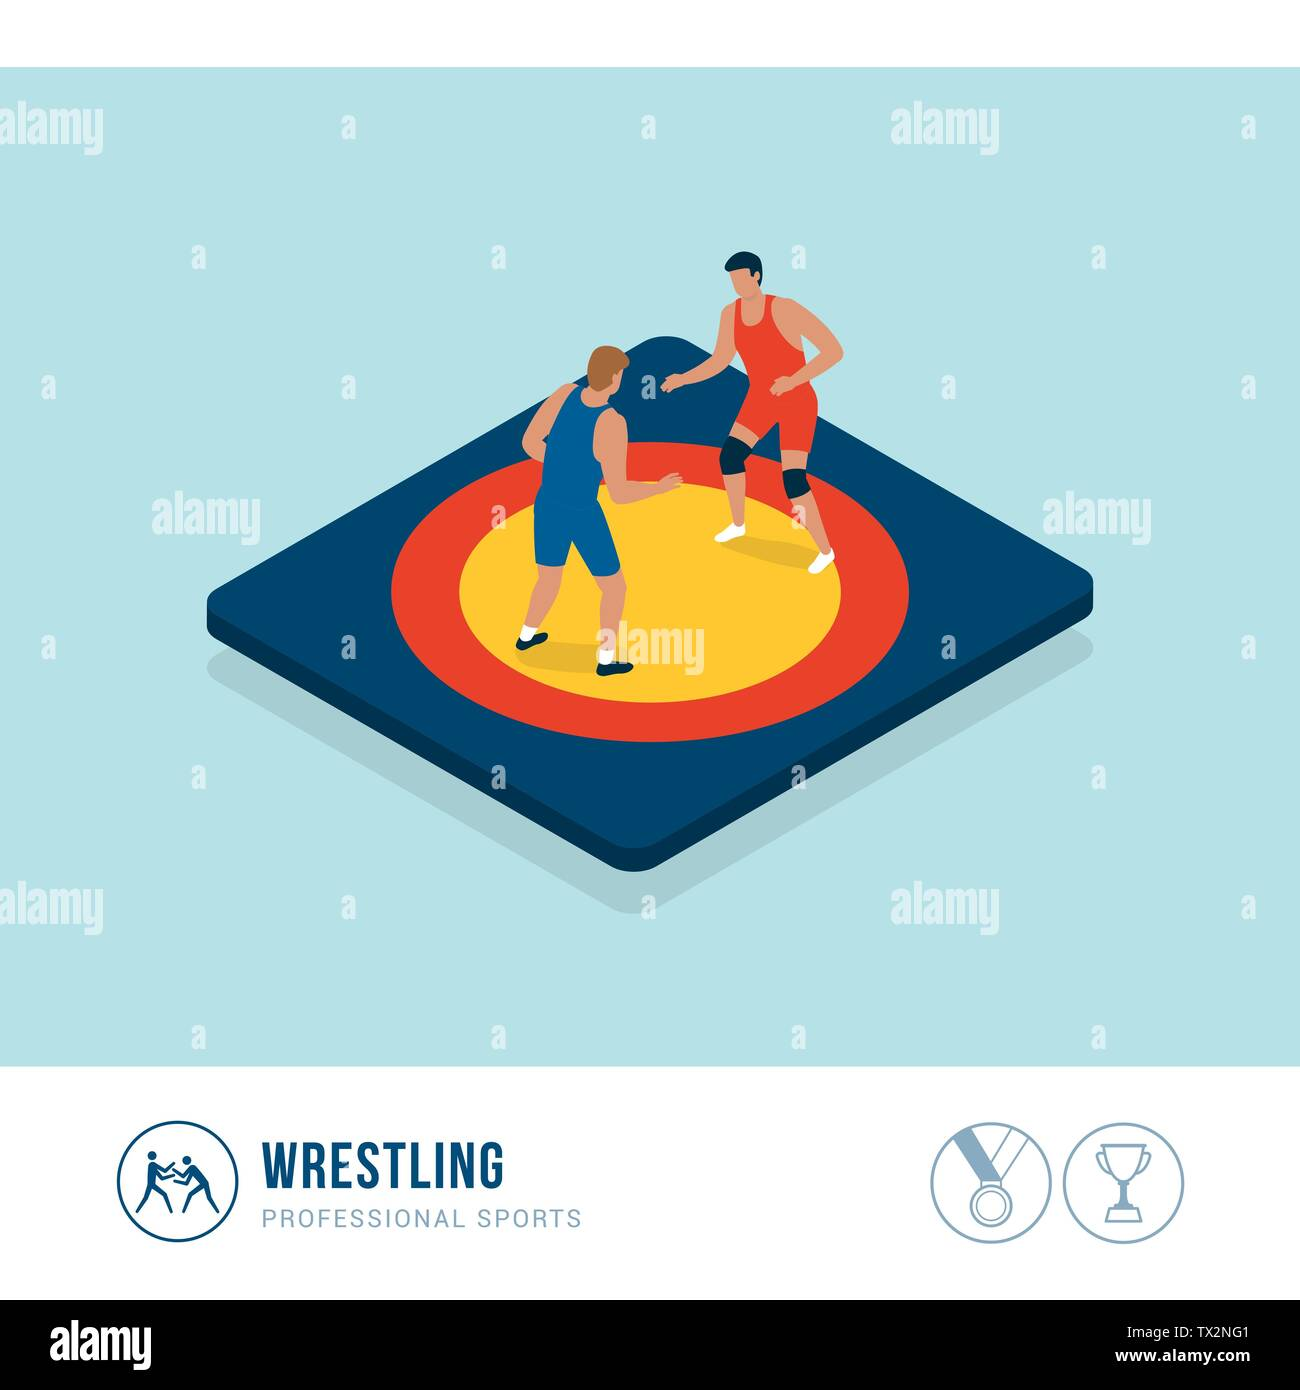 Professional sports competition: wrestling, athletes fighting together in the ring - Stock Image